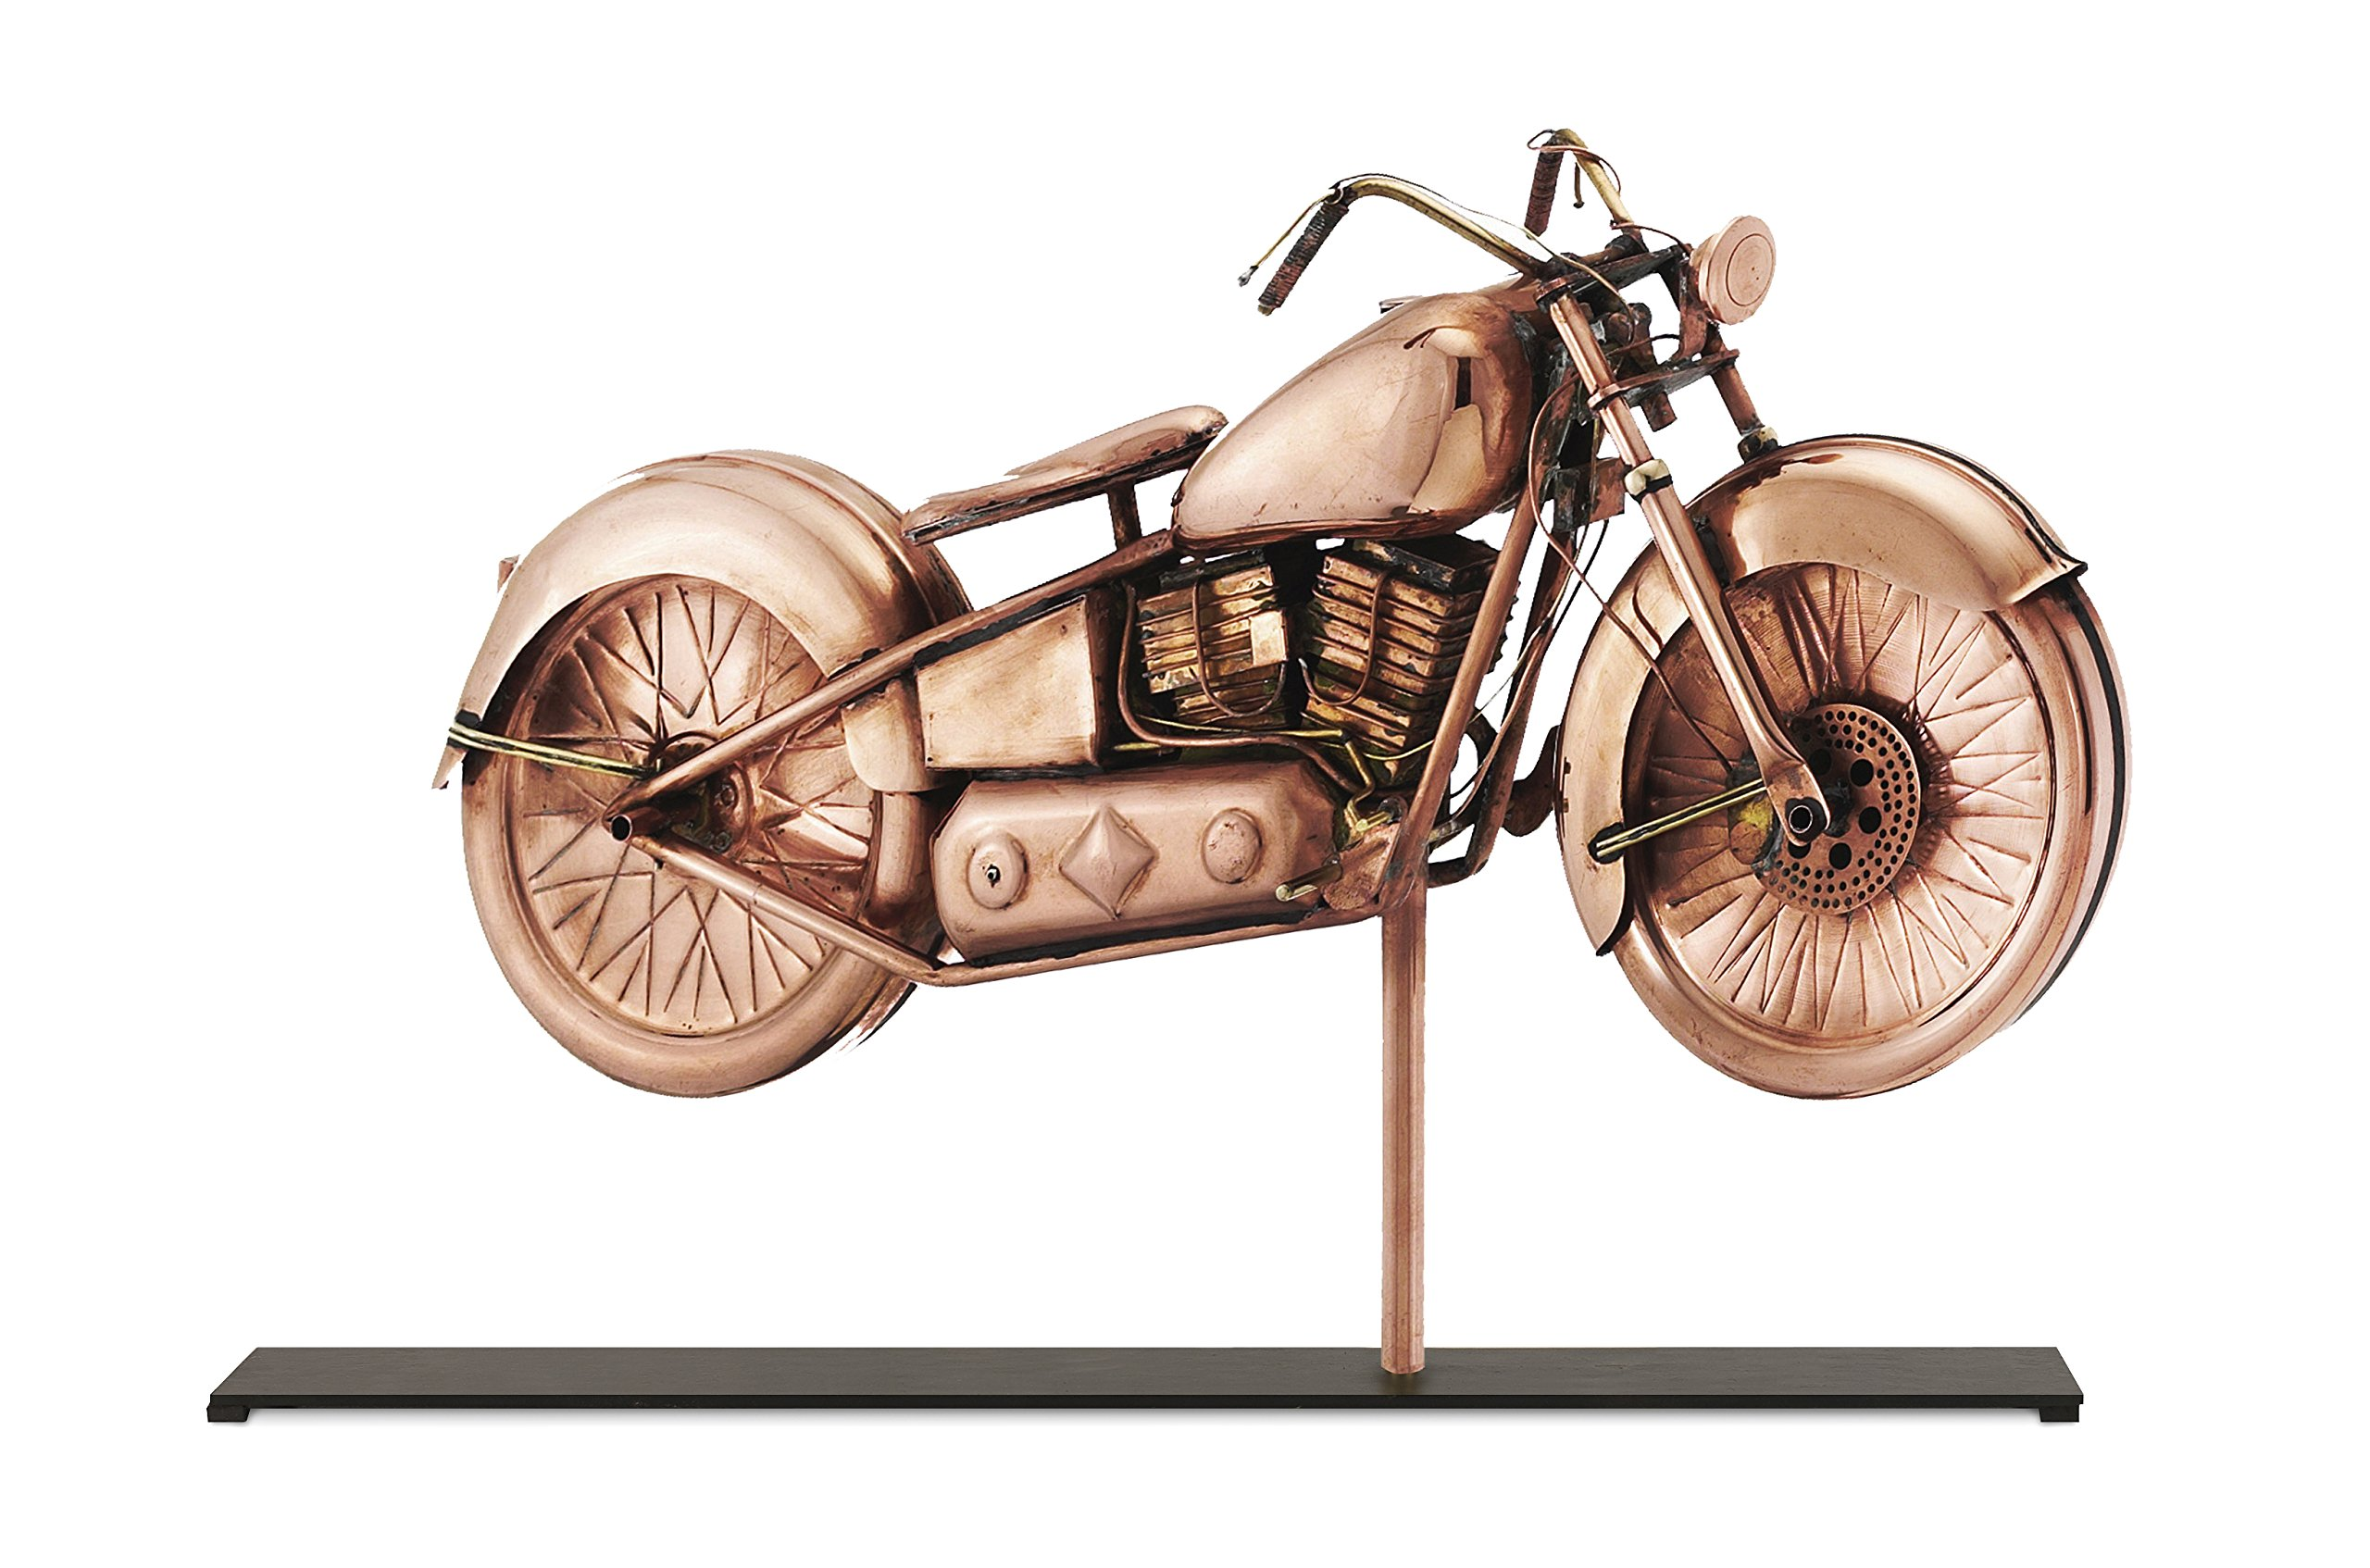 Good Directions Motorcycle Weathervane Sculpture on Mantel / Fireplace Stand, Pure Copper, Sporting Home Décor, Tabletop Accent